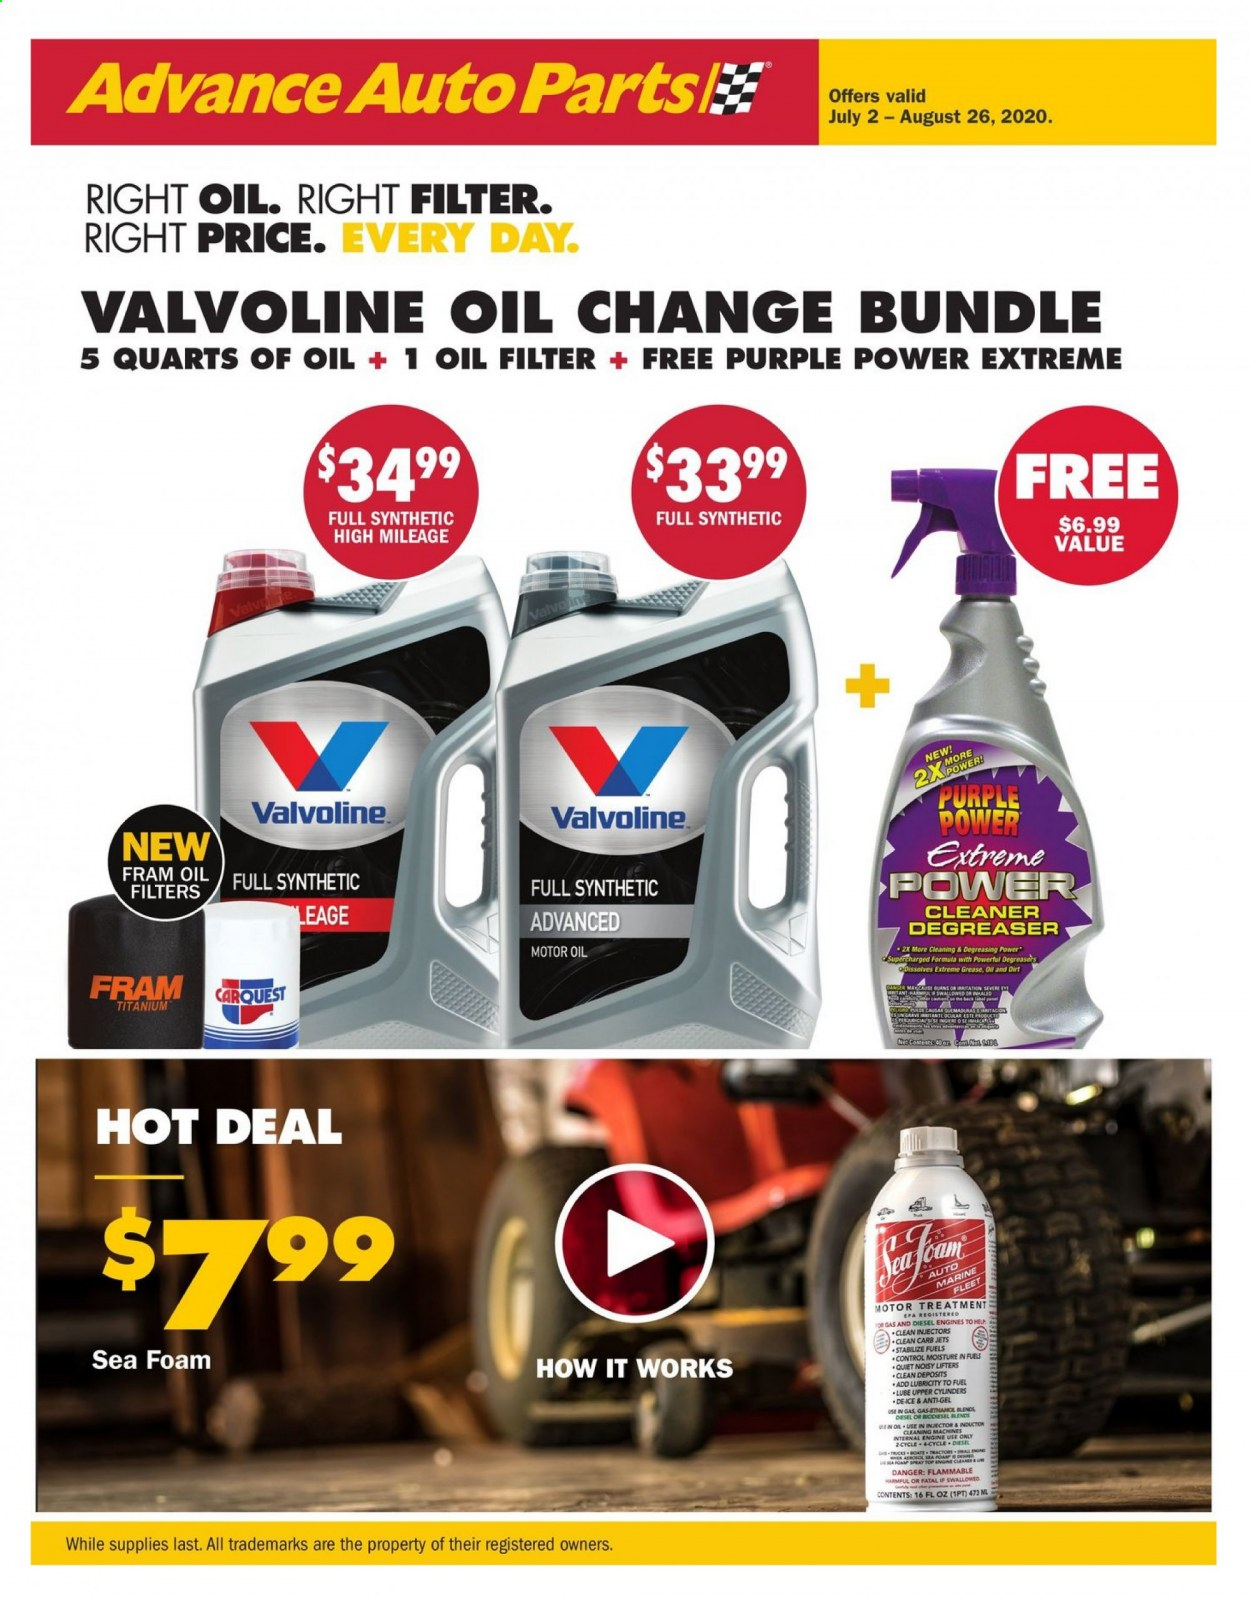 Advance Auto Parts Flyer - 07.02.2020 - 08.26.2020 - Sales products - bundle, engine cleaner, foam, fuel, moisture, motor oil, spray, treatment, cleaner, control. Page 1.